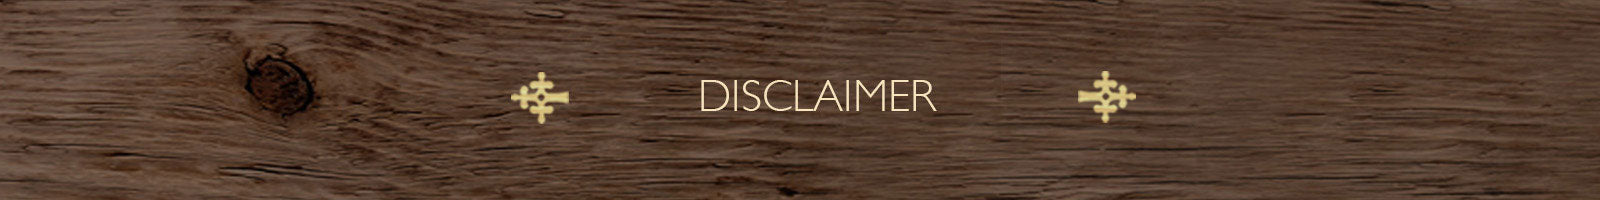 Disclaimer - The India Craft House